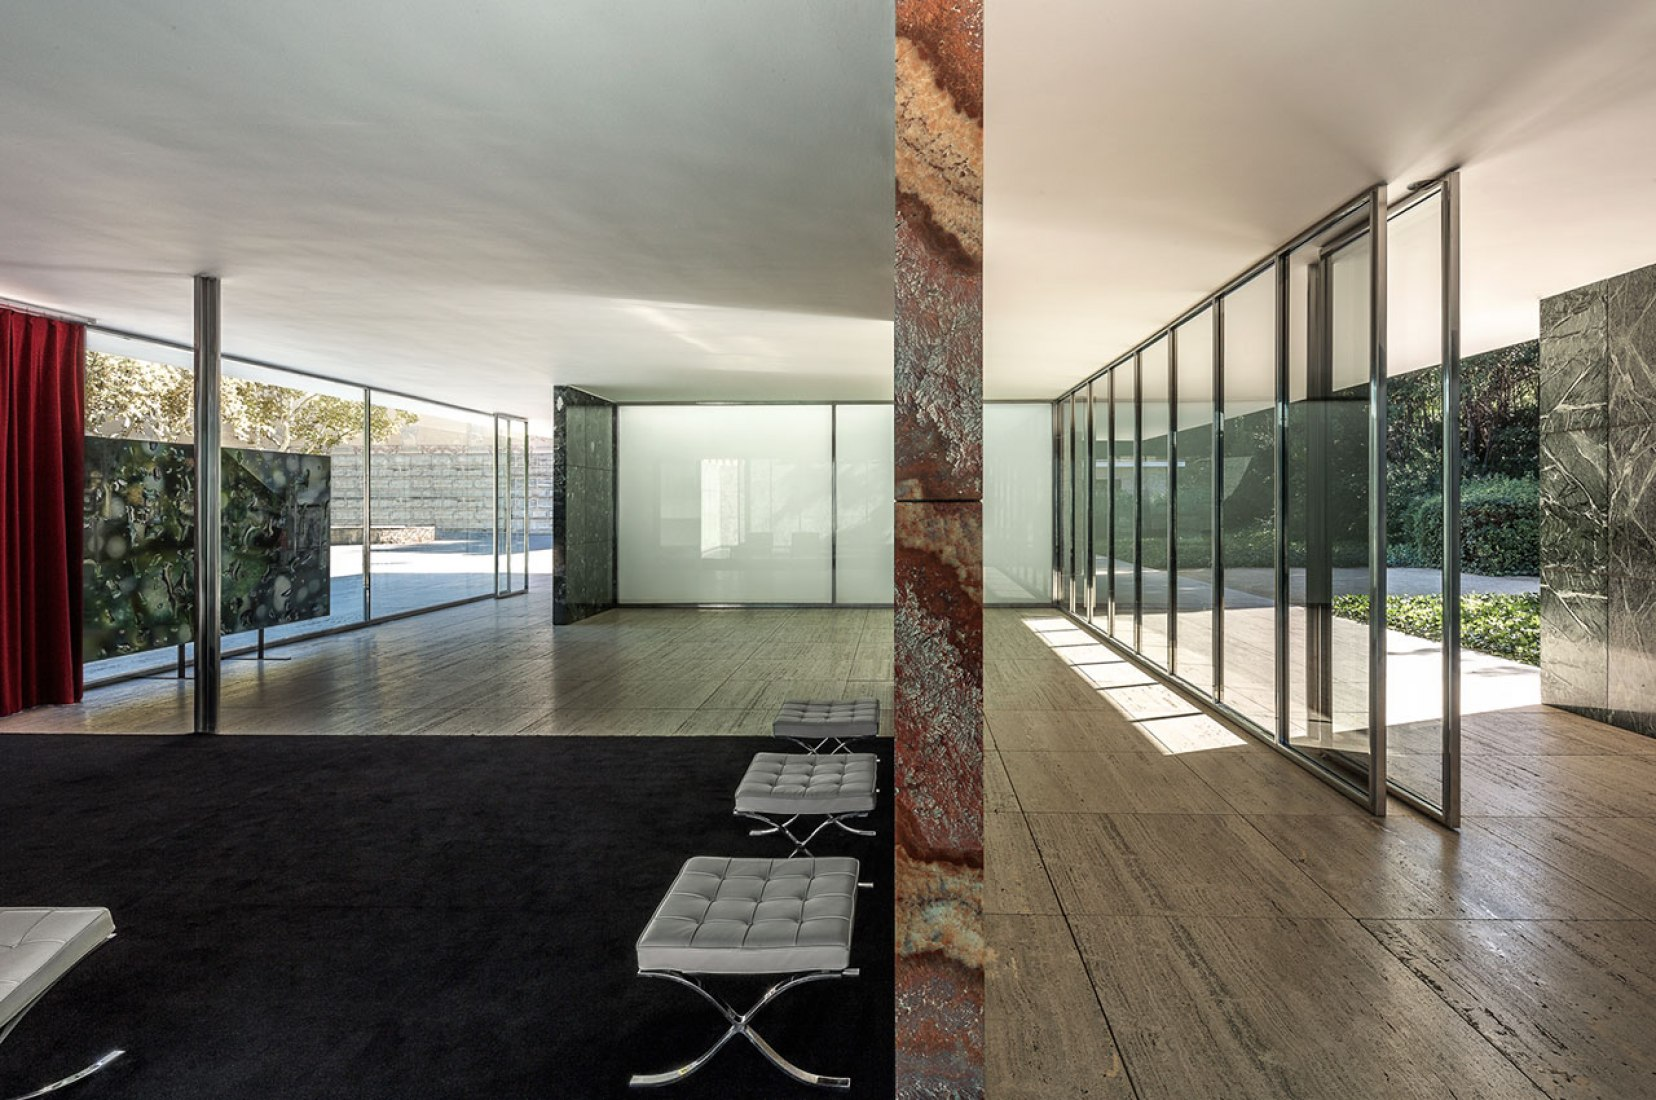 Pavilion Mies van der Rohe of Barcelona. Furniture by Lilly Reich. Photograph © Rafa Vargas. Image courtesy of Fundació Mies van der Rohe.